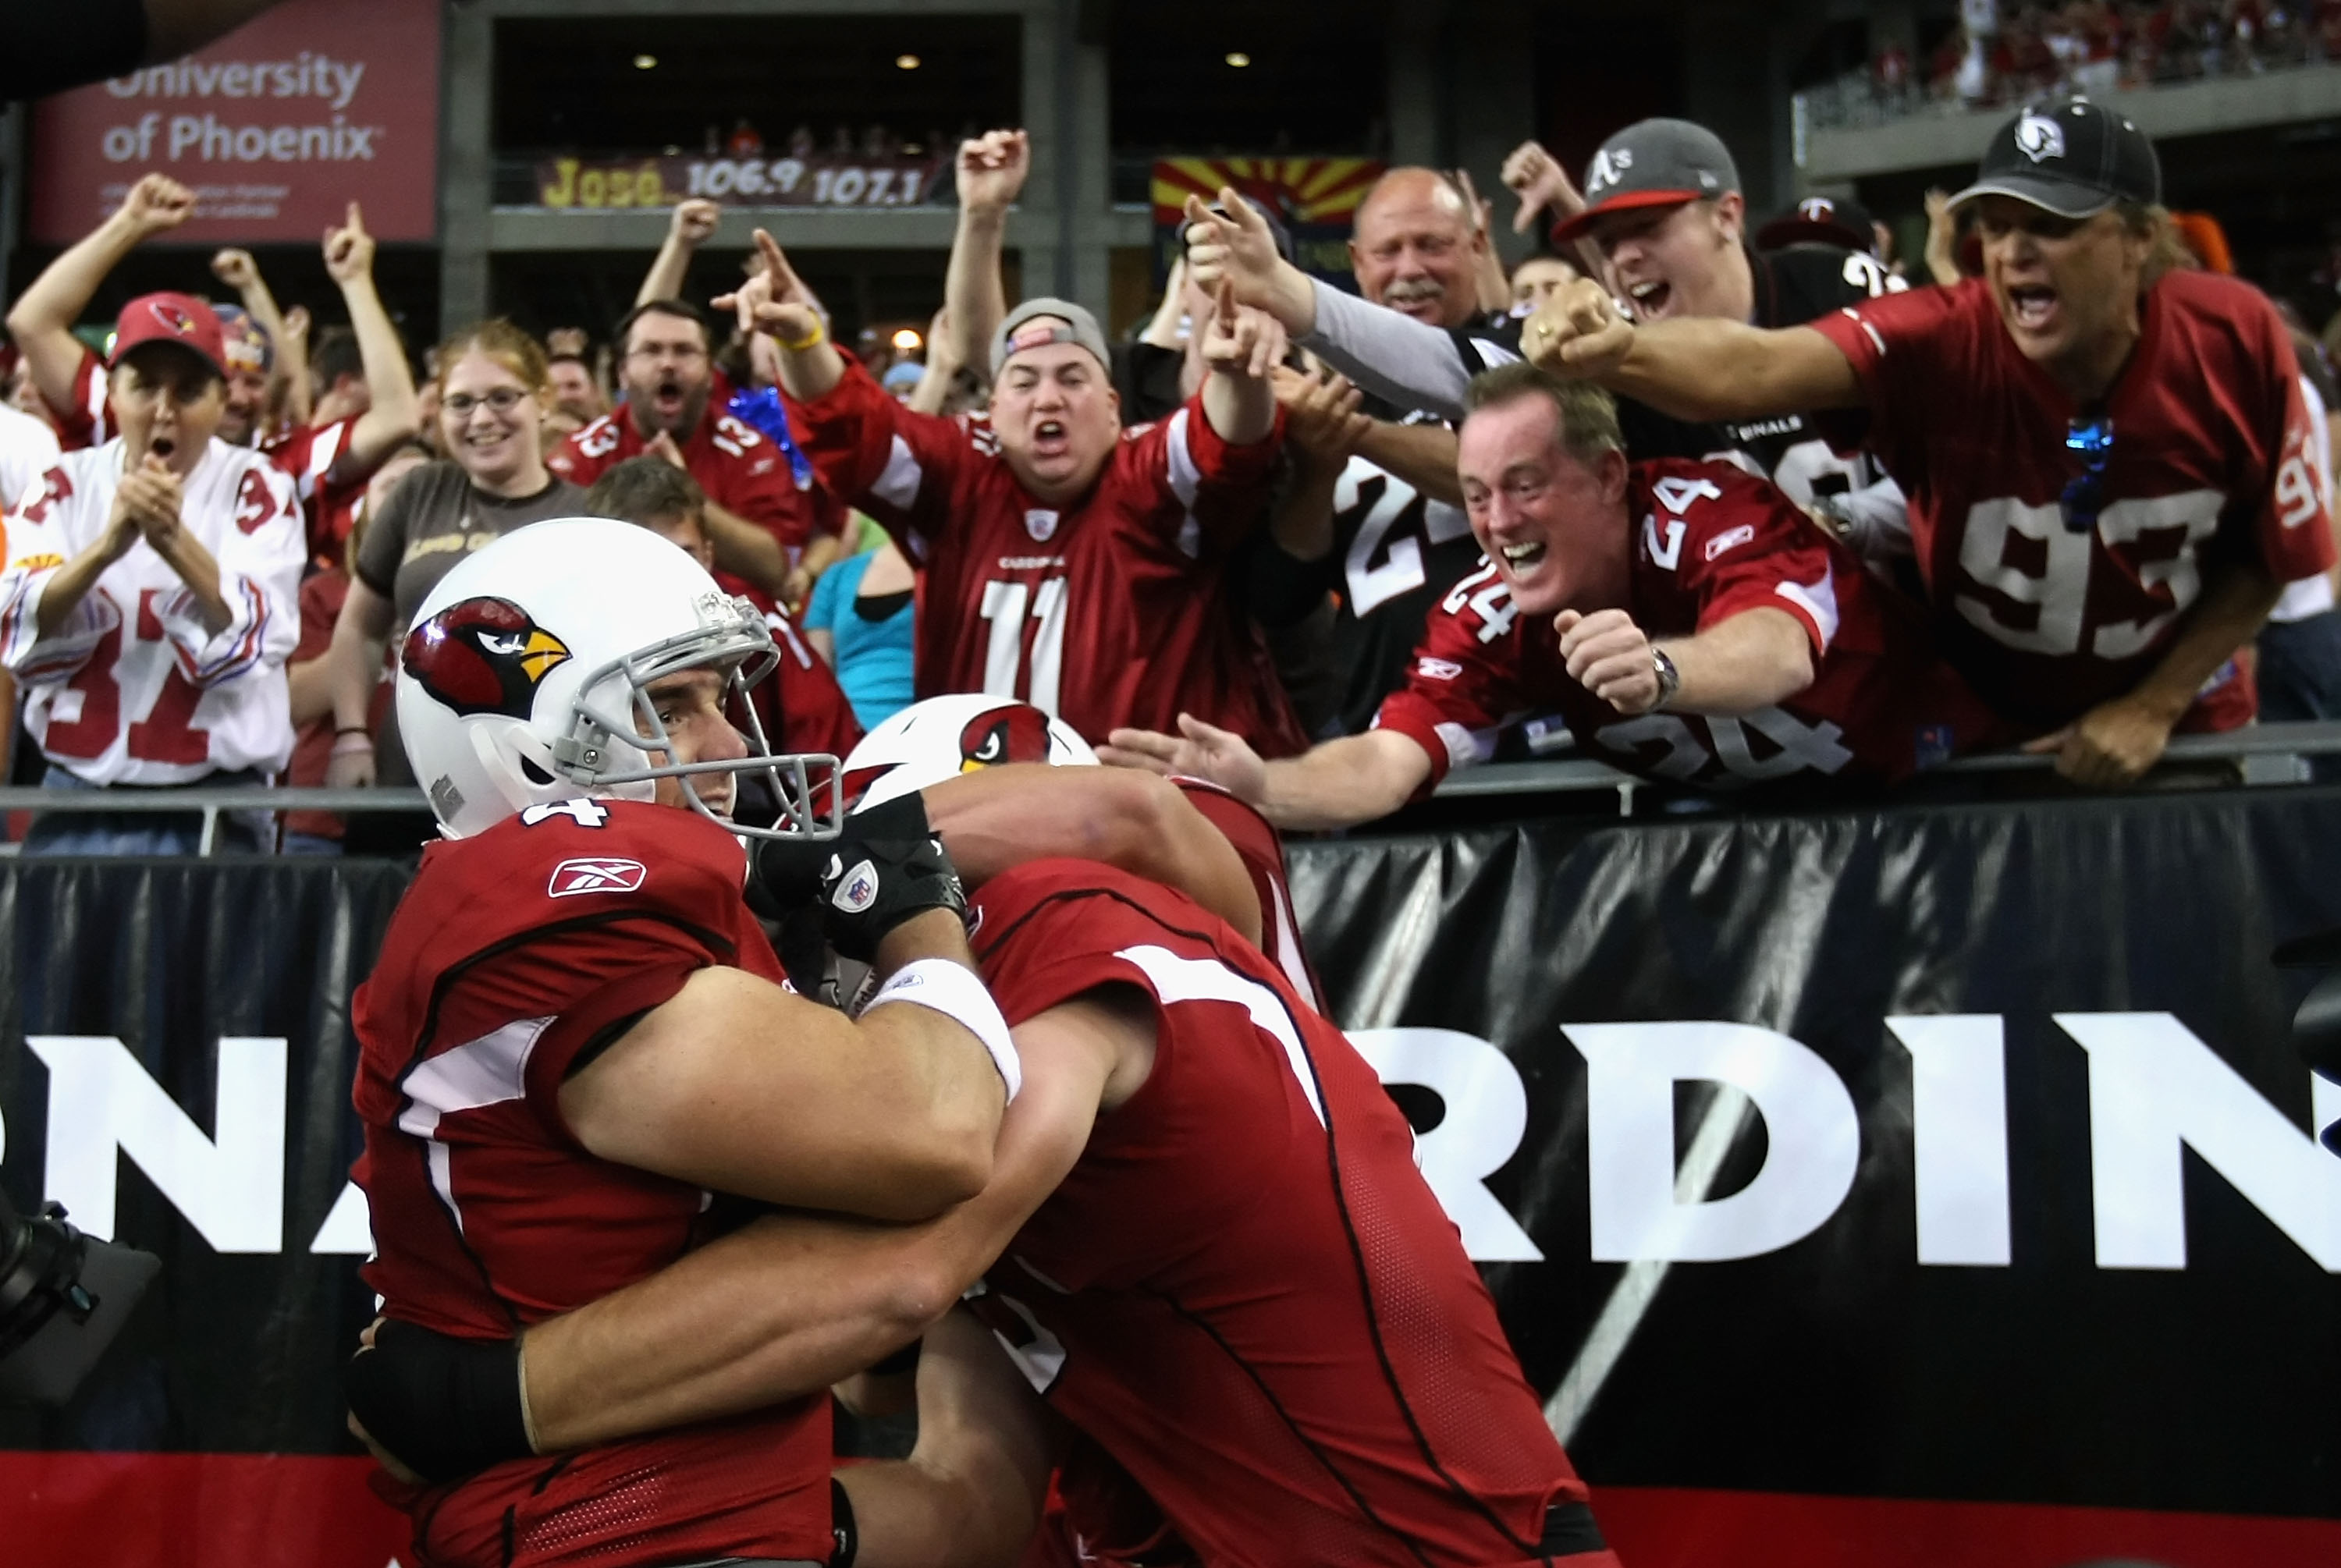 GLENDALE, AZ - DECEMBER 12:  Kicker Jay Feely #4 of the Arizona Cardinals celebrates with teamamtes and fans after scoring on a 5 yard rushing touchdown against the Denver Broncos during the second quarter of the NFL game at the University of Phoenix Stad